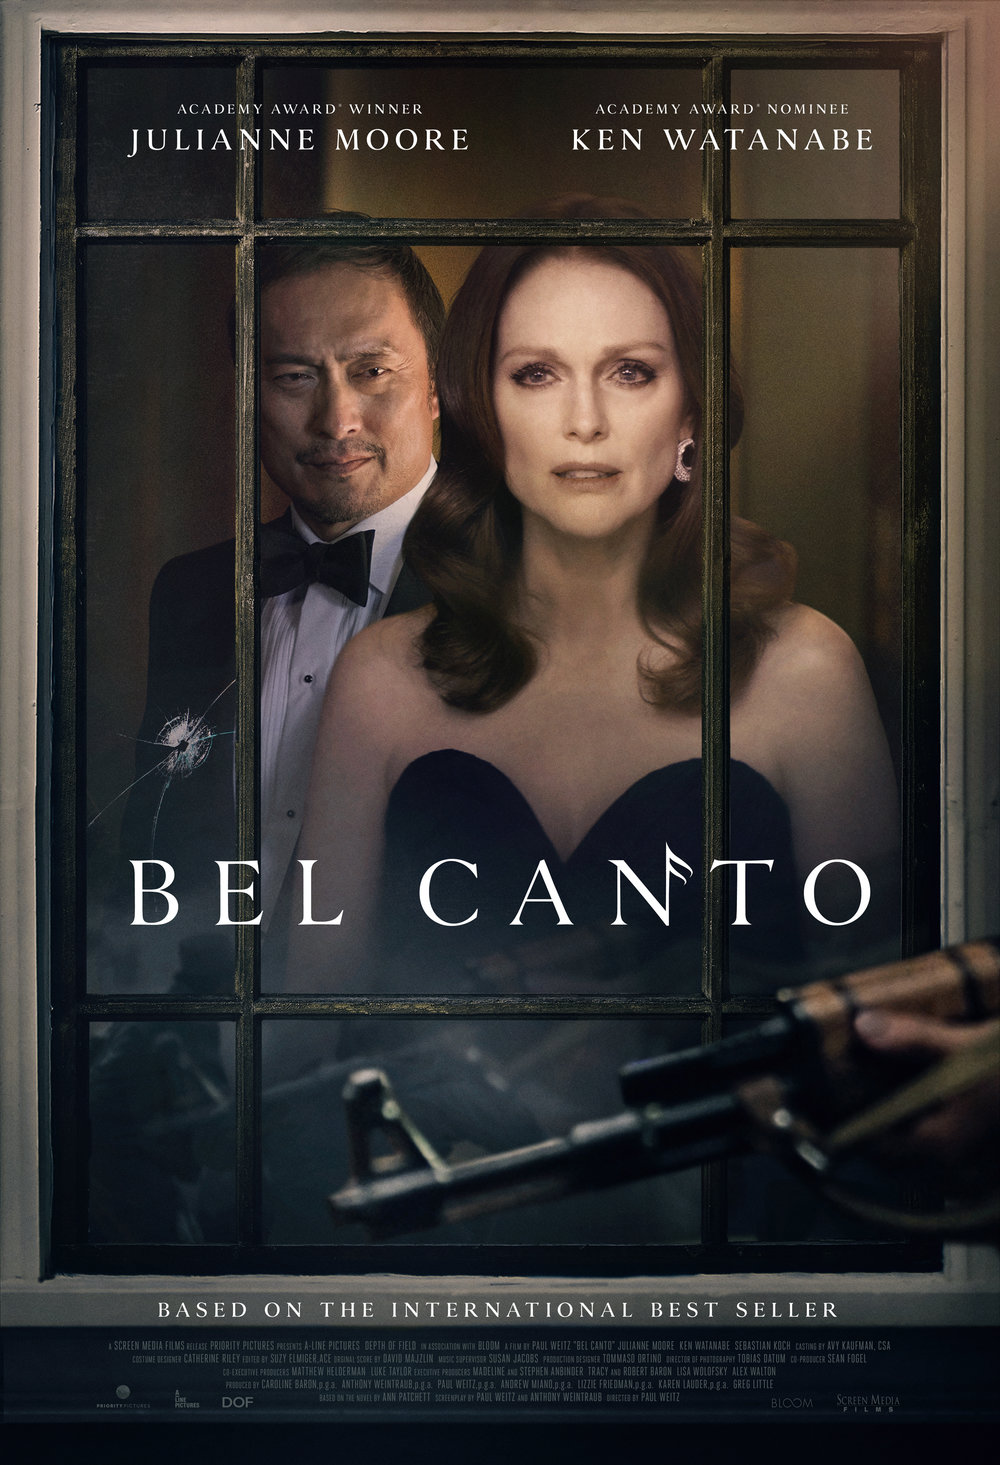 bel canto movie poster.jpg